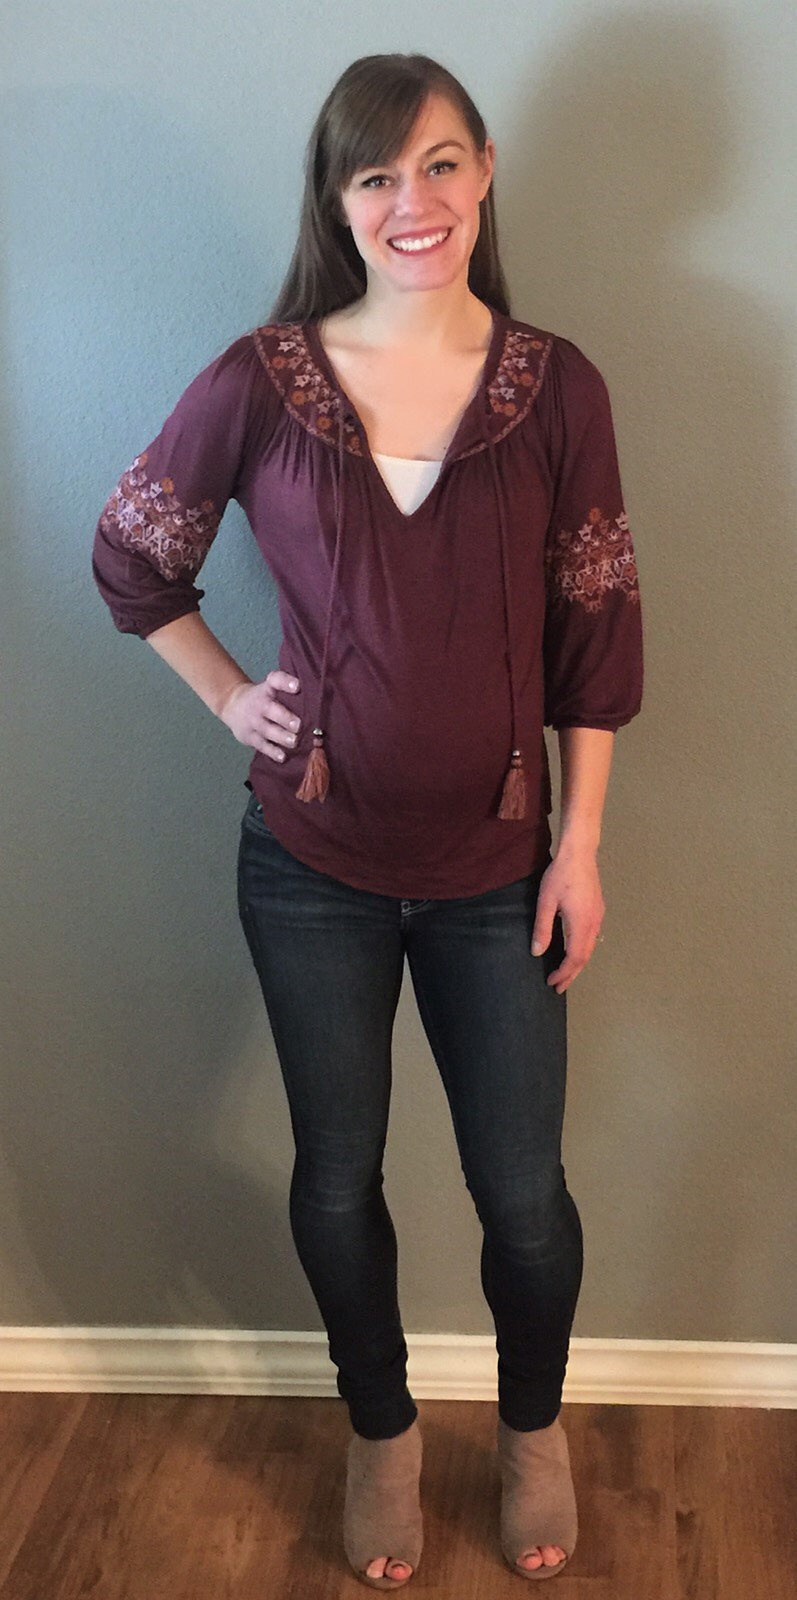 Michelle Rose styled with a peasant top and skinny jeans